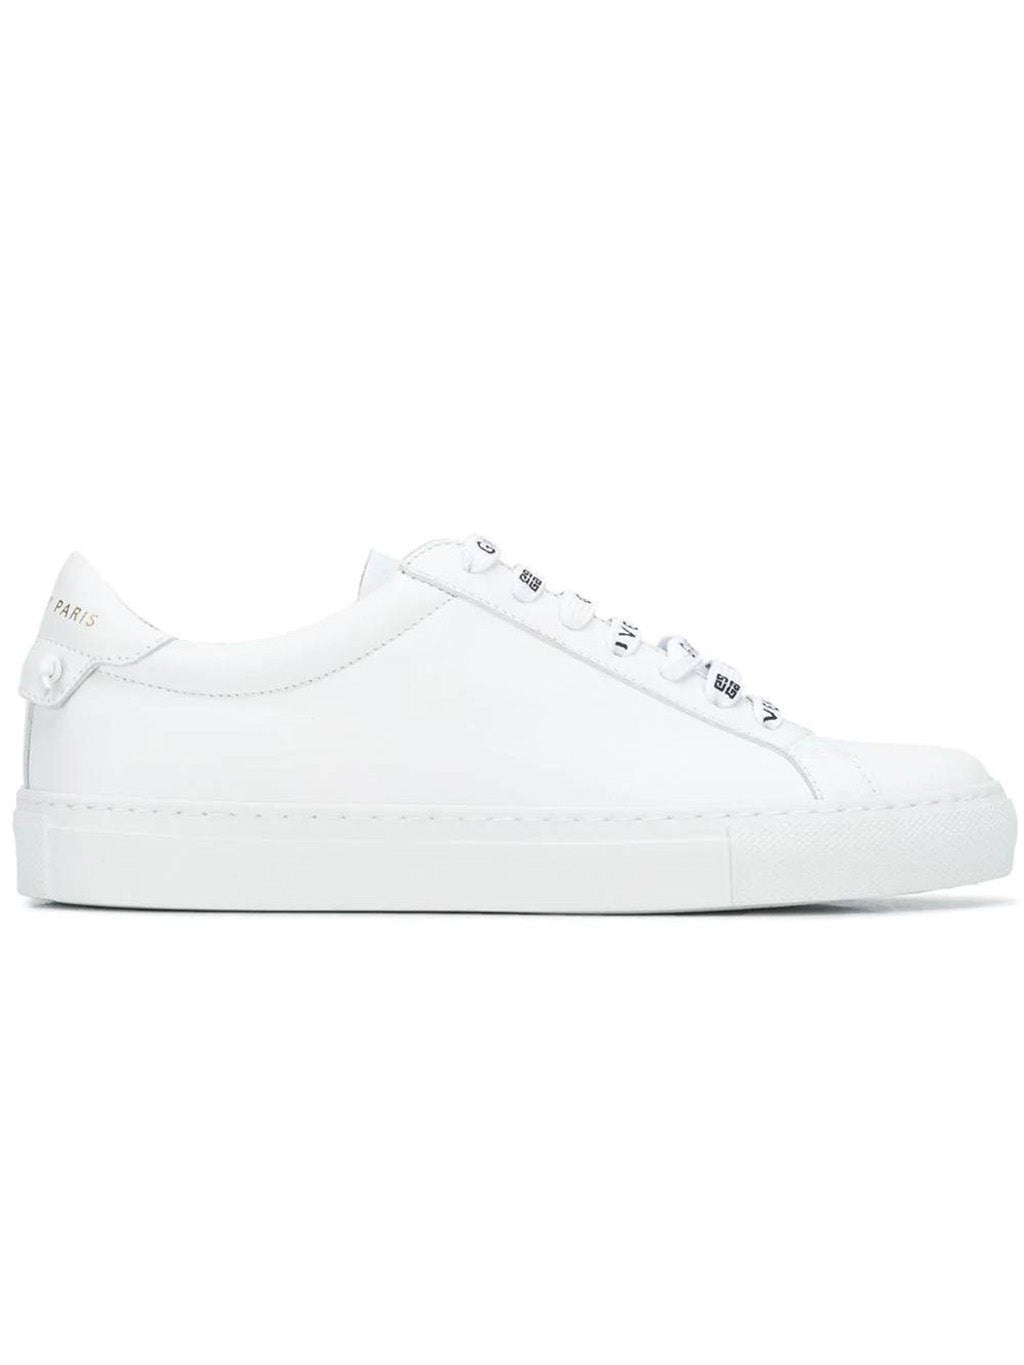 White Urban Street Low Top Sneakers